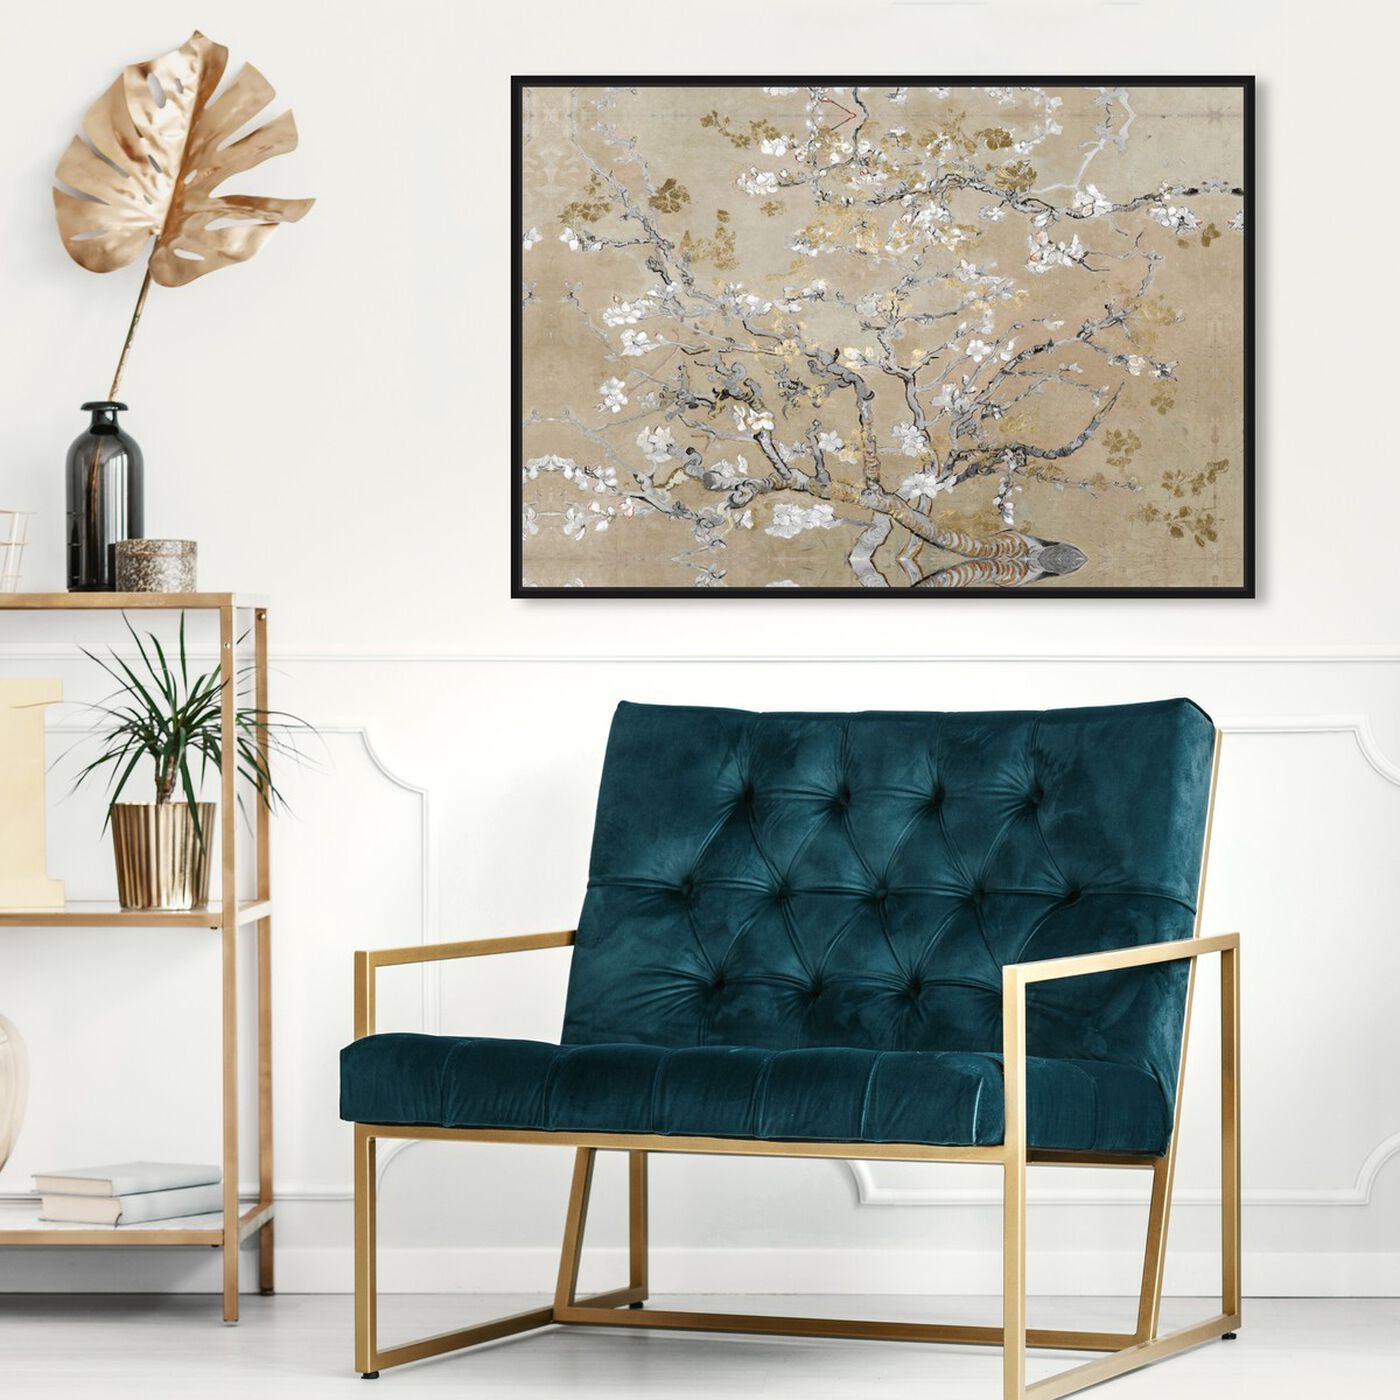 Hanging view of Van Gogh in Gold Blossoms Inspiration featuring classic and figurative and impressionism art.